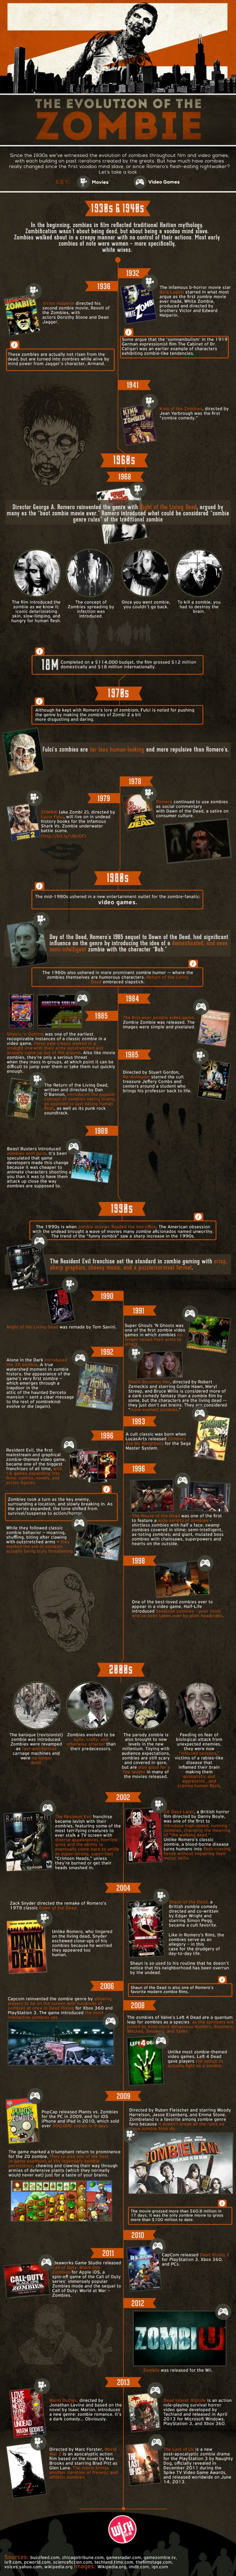 The Evolution of the Zombie [Infographic] Infographic